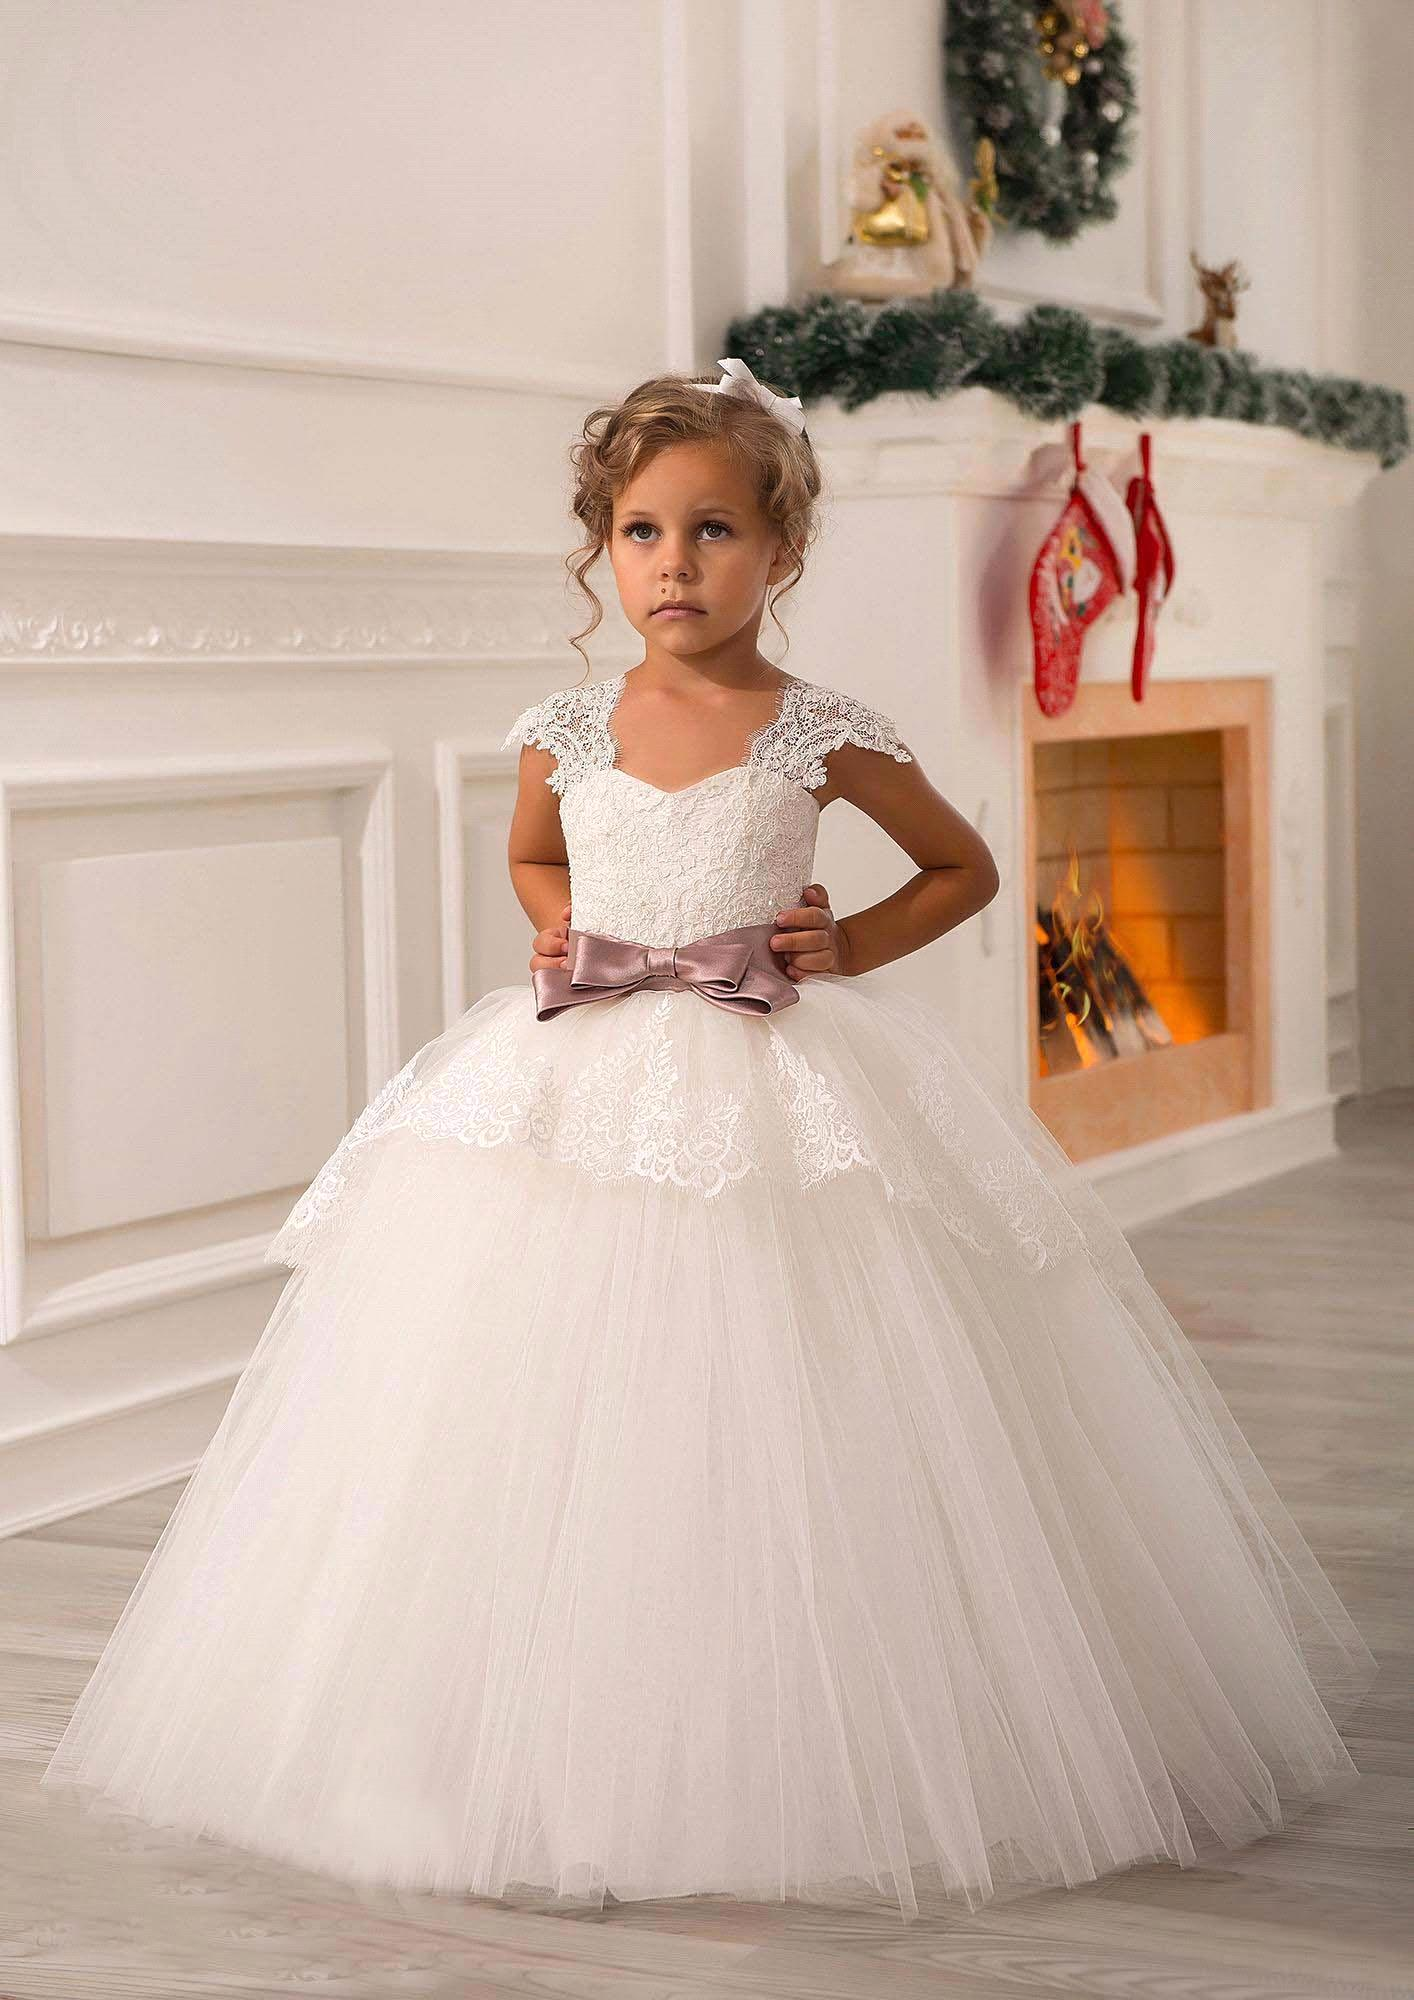 Cheap Flower Girl Dresses Under 20 Beatific Bride